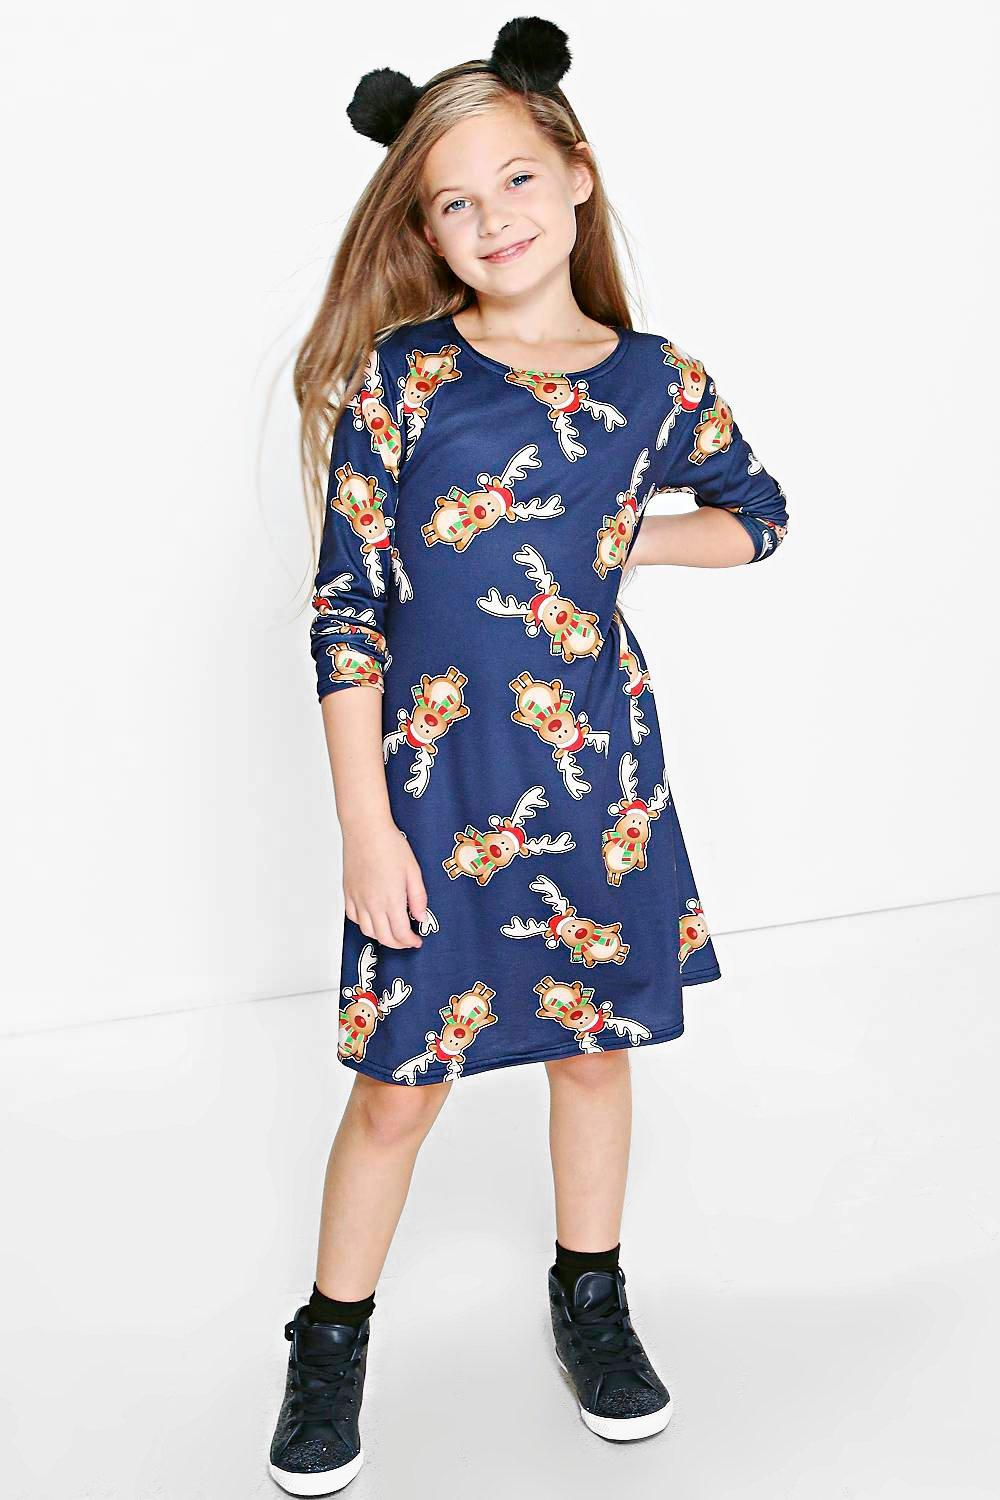 Girls Rudolph Christmas Swing Dress